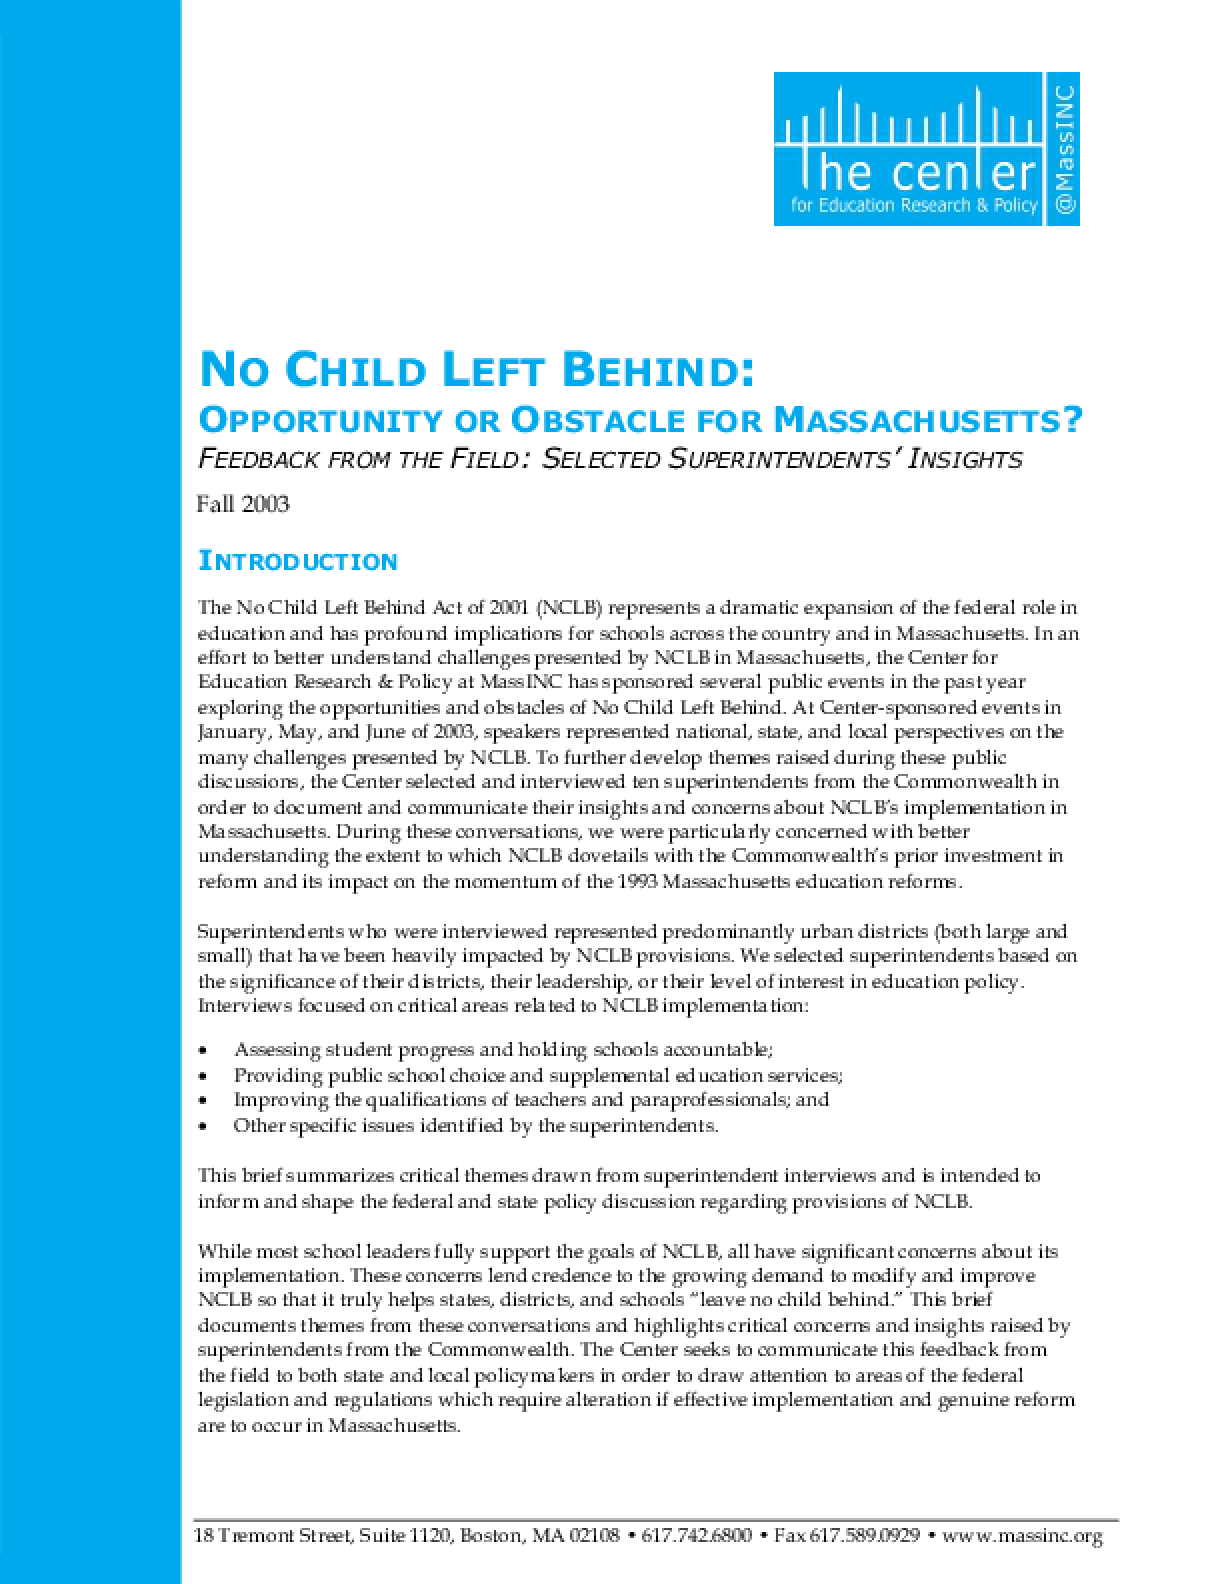 No Child Left Behind - Opportunity or Obstacle for Massachusetts: Feedback From the Field - Interviews with Selected Superintendents